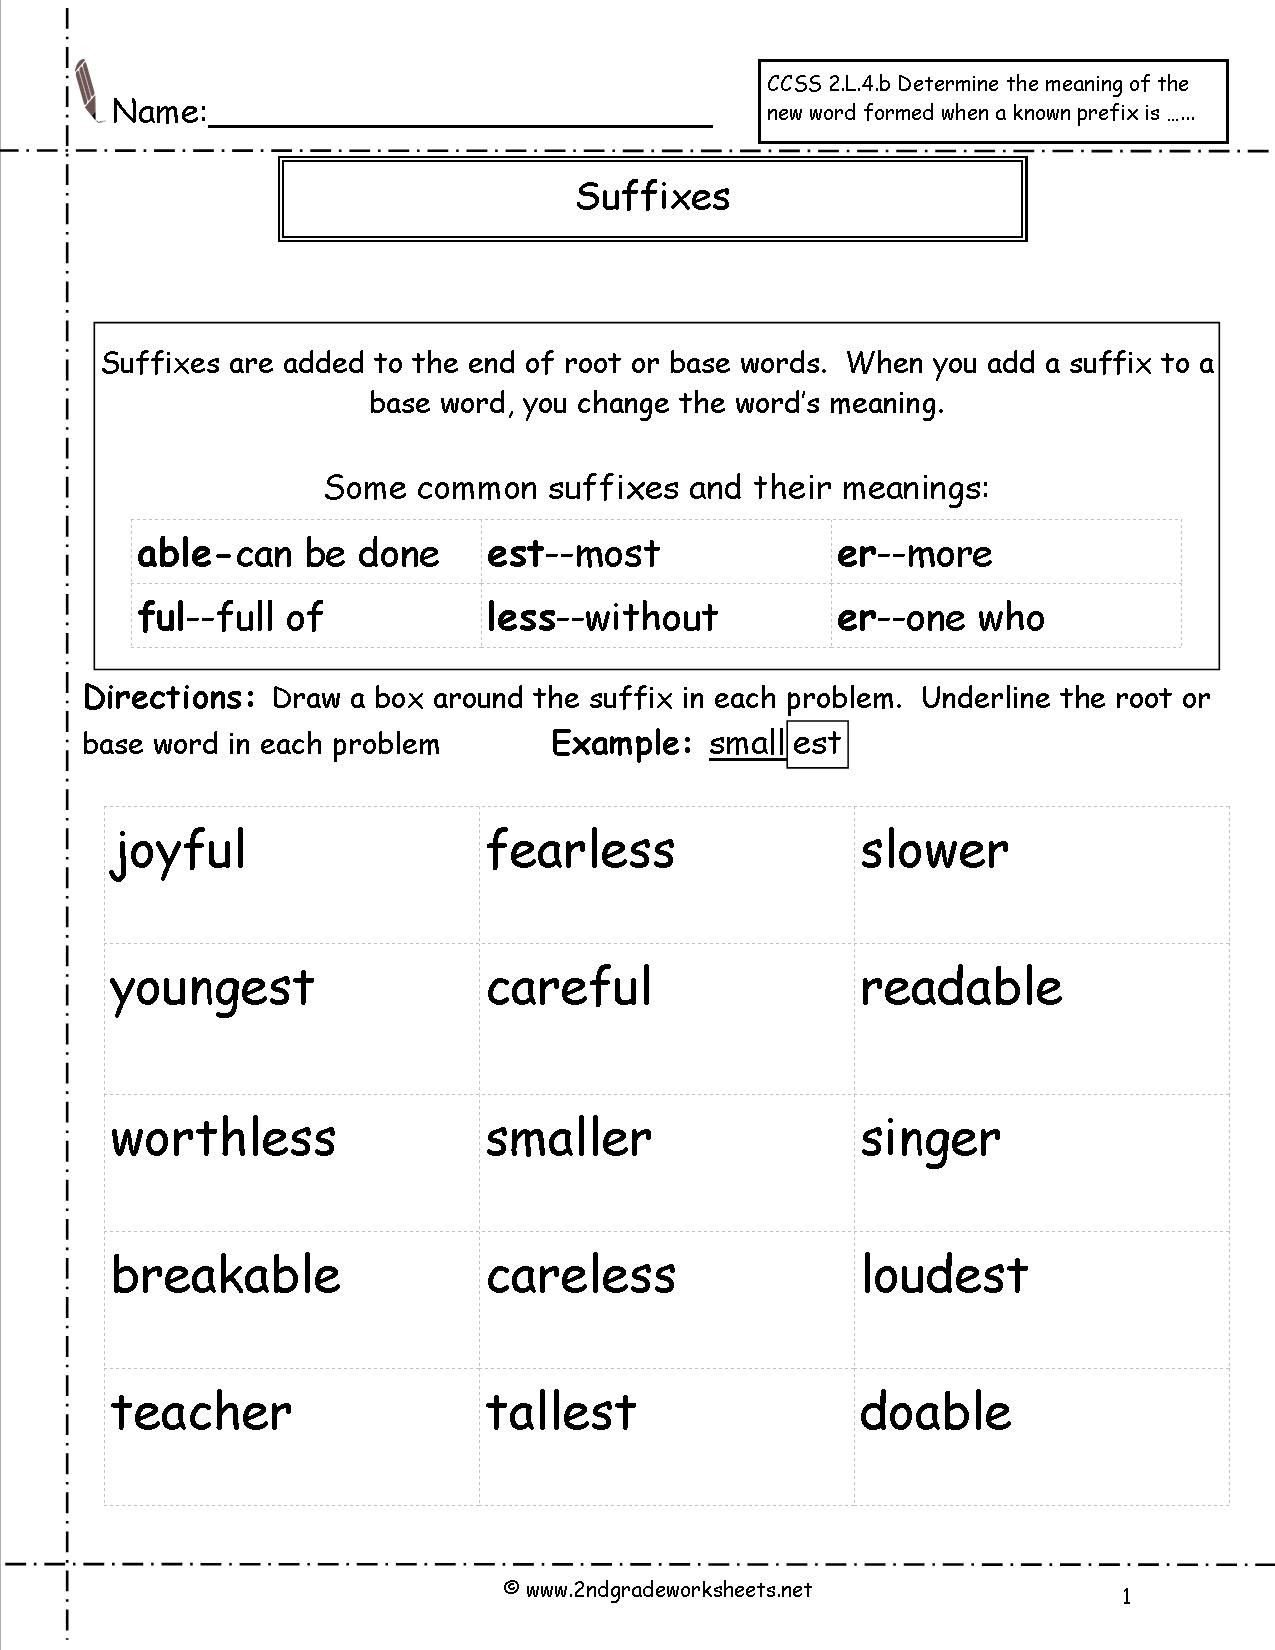 Suffix Worksheets Pdf 41 Innovative Prefix Worksheets for You